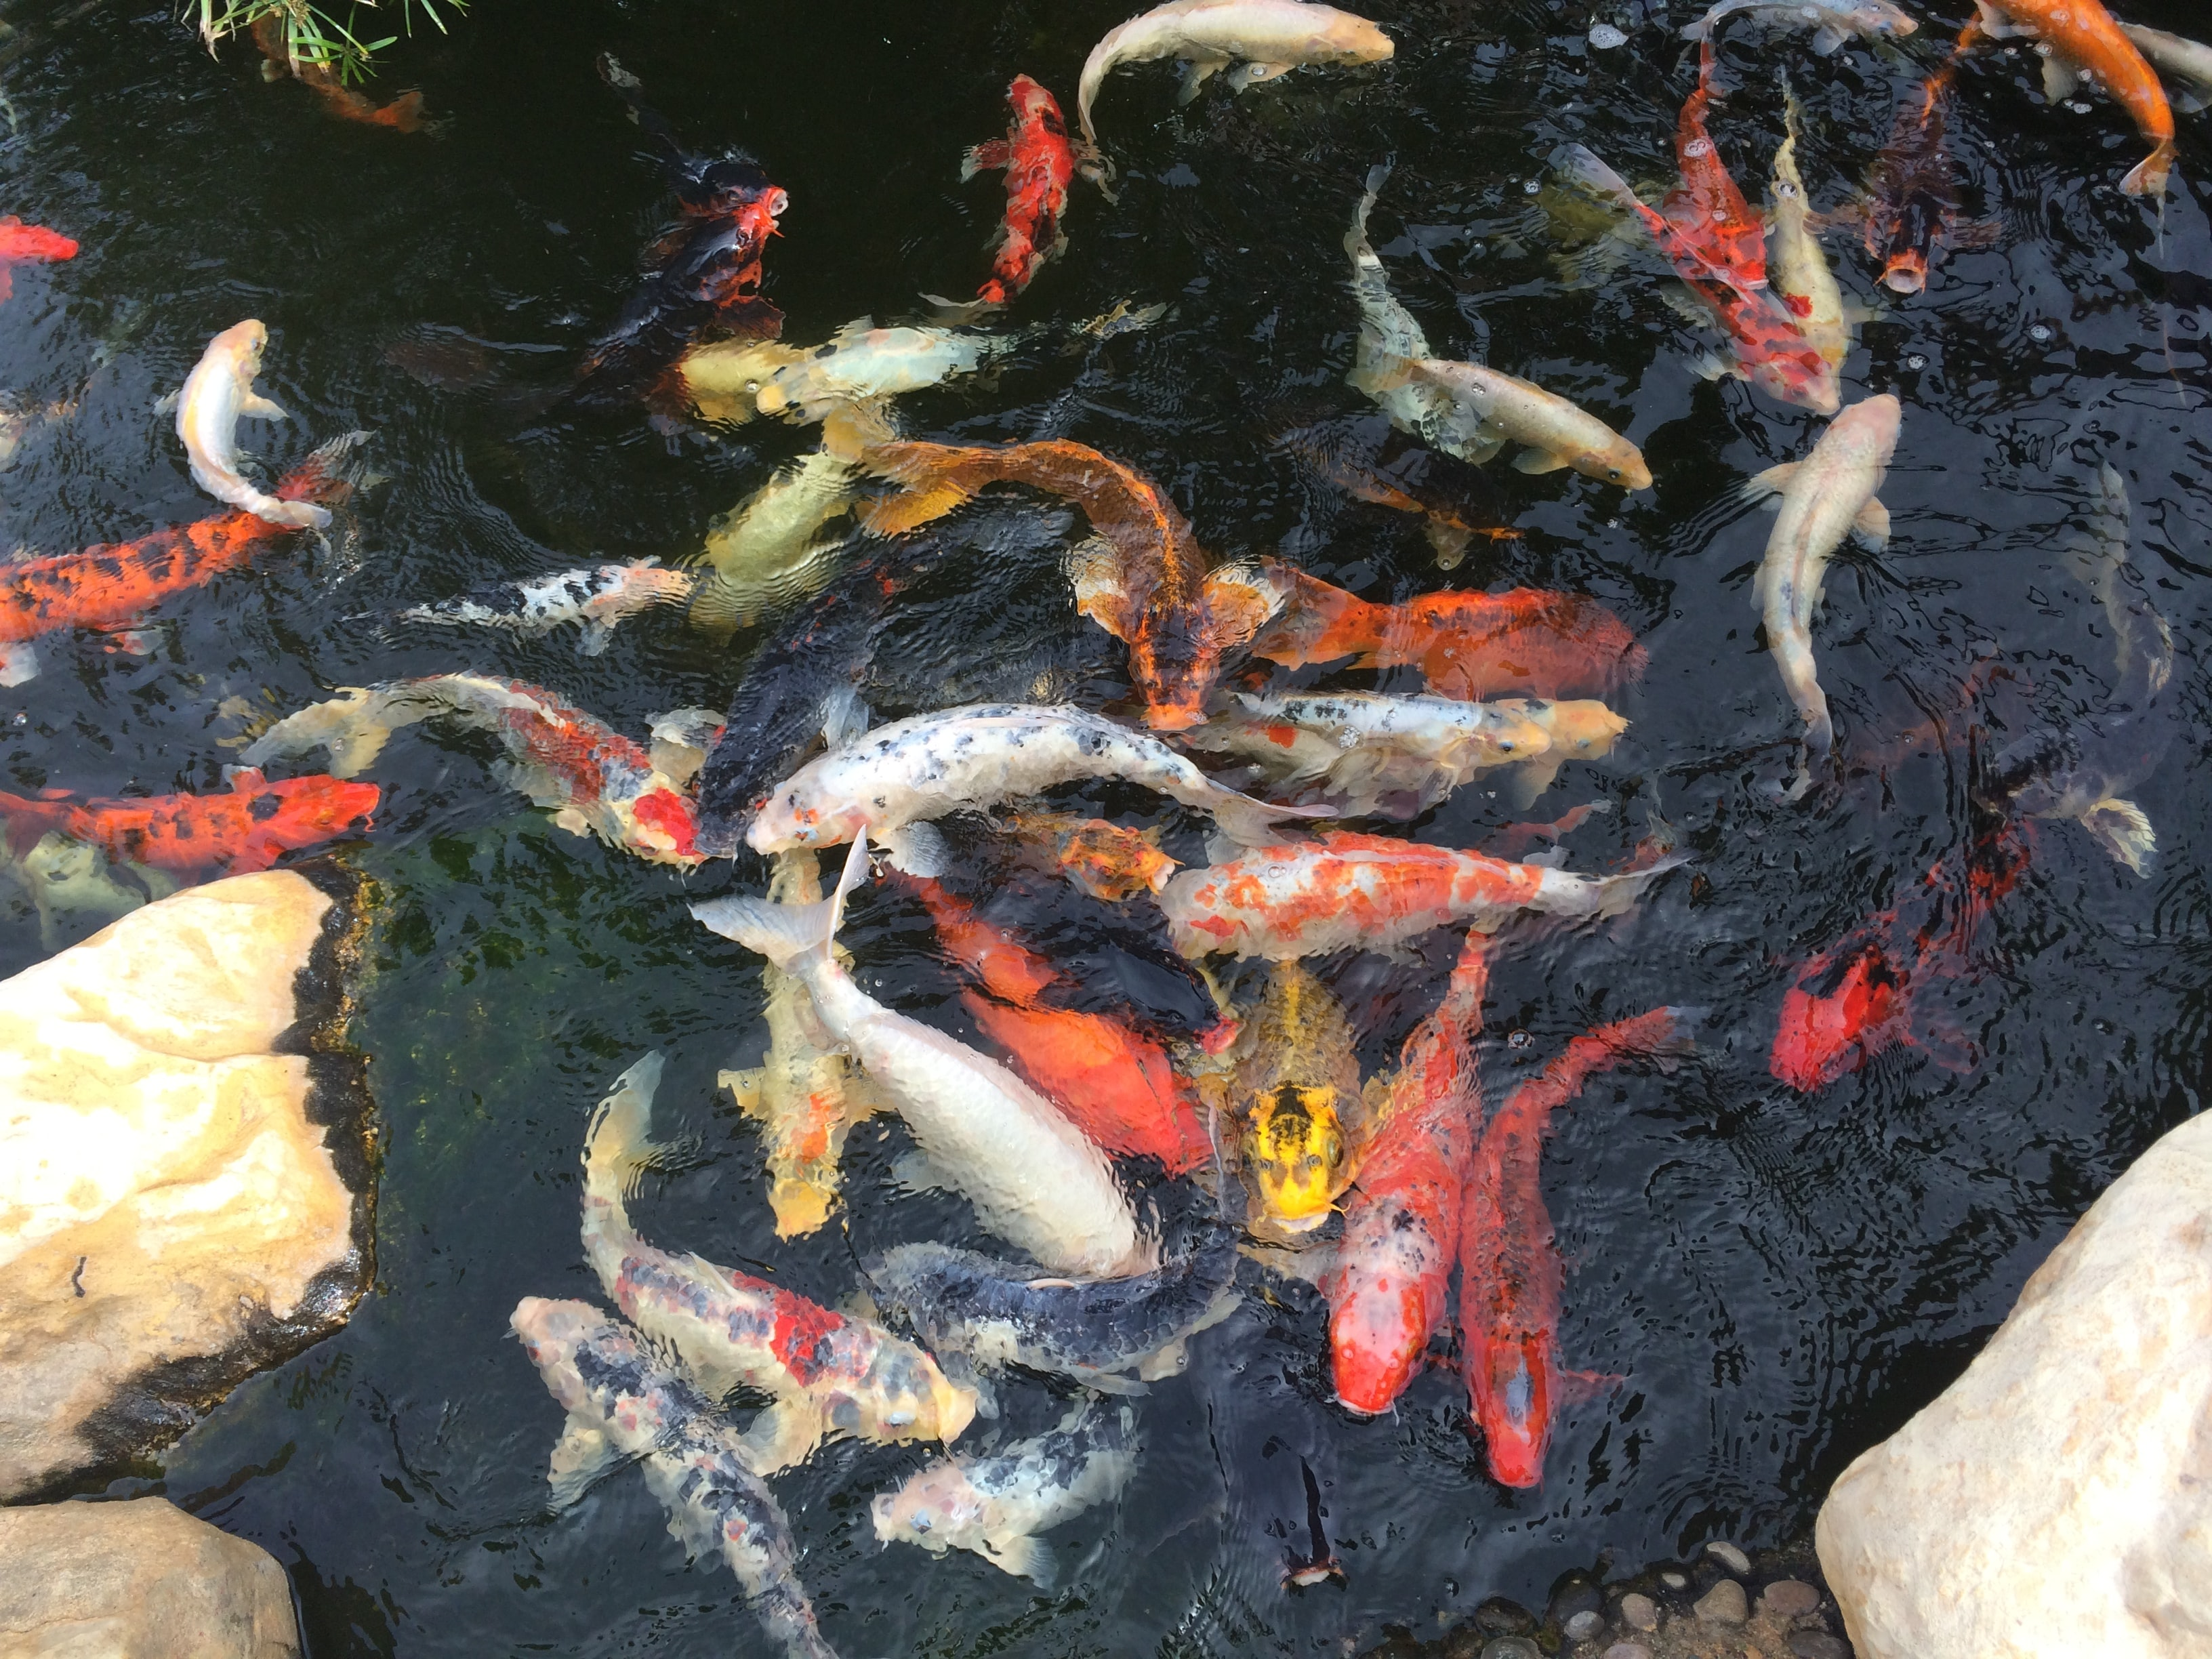 koi fish in body of water